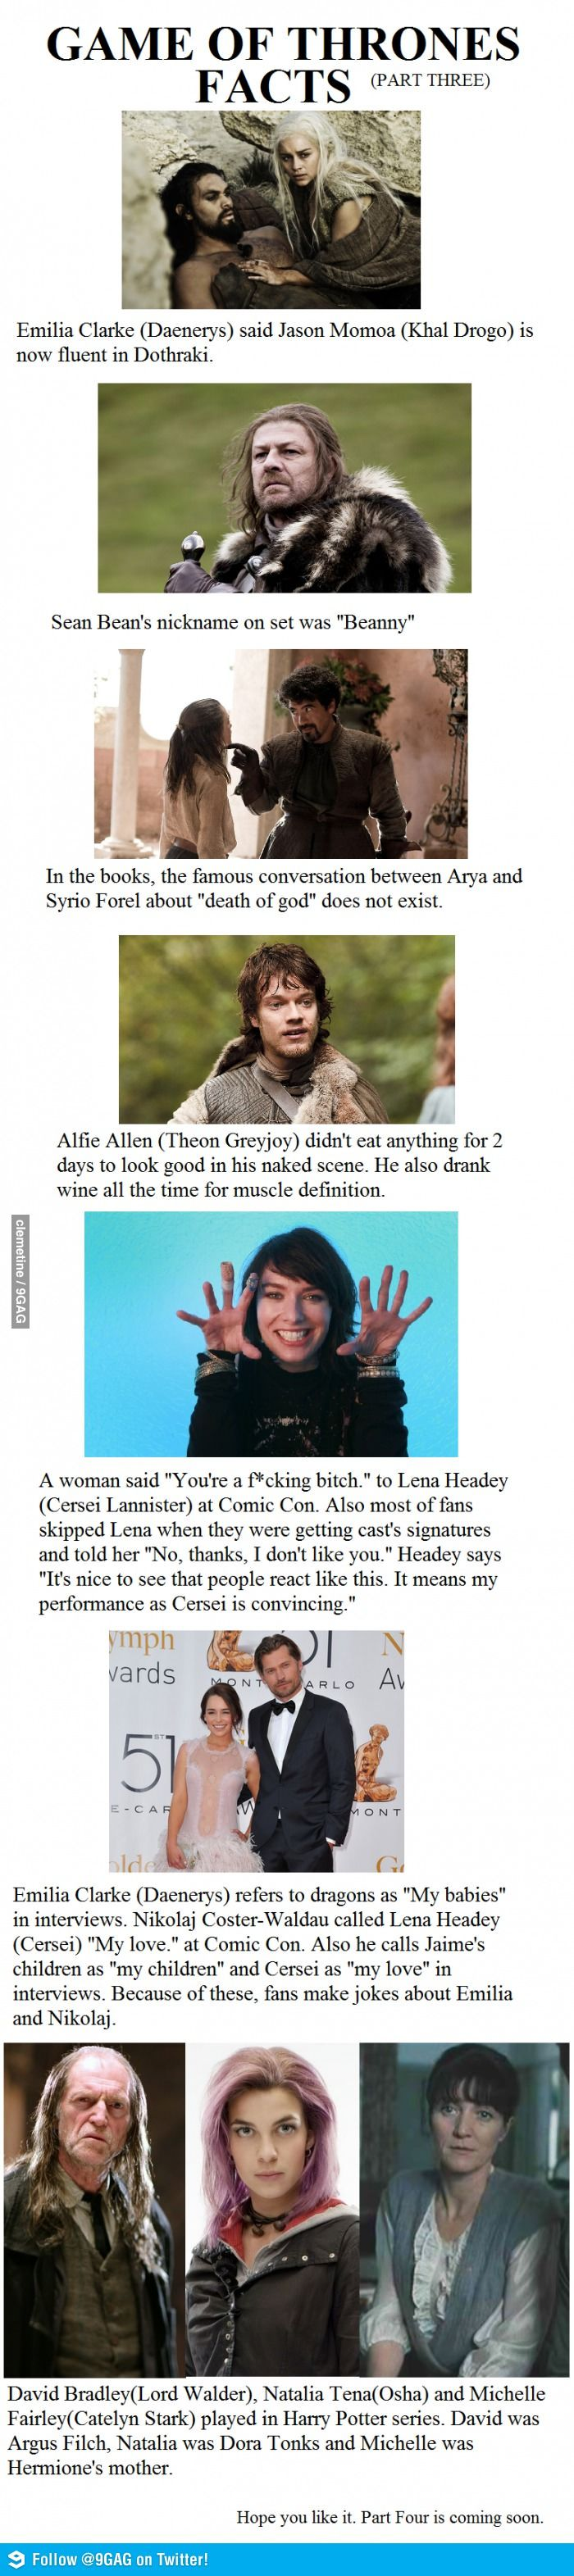 Game of Thrones facts. I learned something new about Harry Potter today: Hermione's mom is Robb Starks mom!